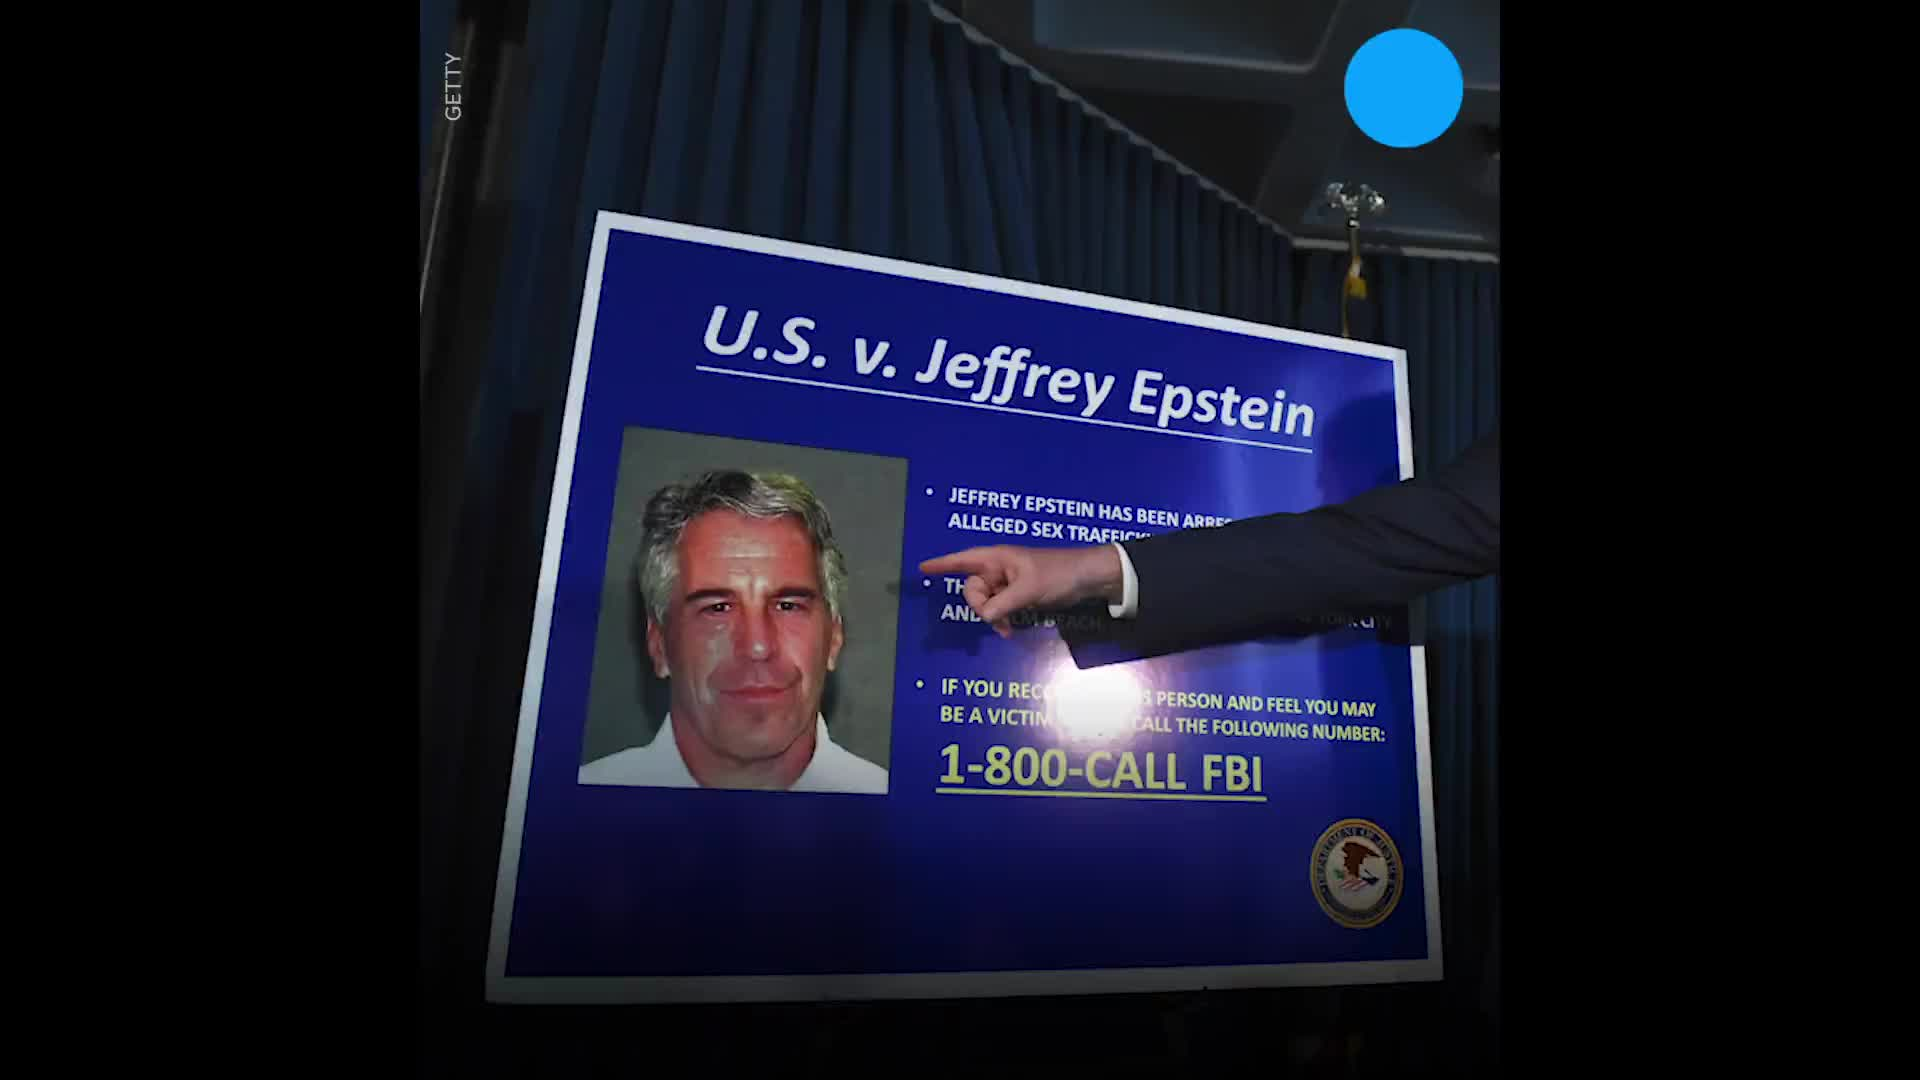 After Jeffrey Epstein suicide, Bureau of Prisons tells guards: Stop surfing the web and watch inmates